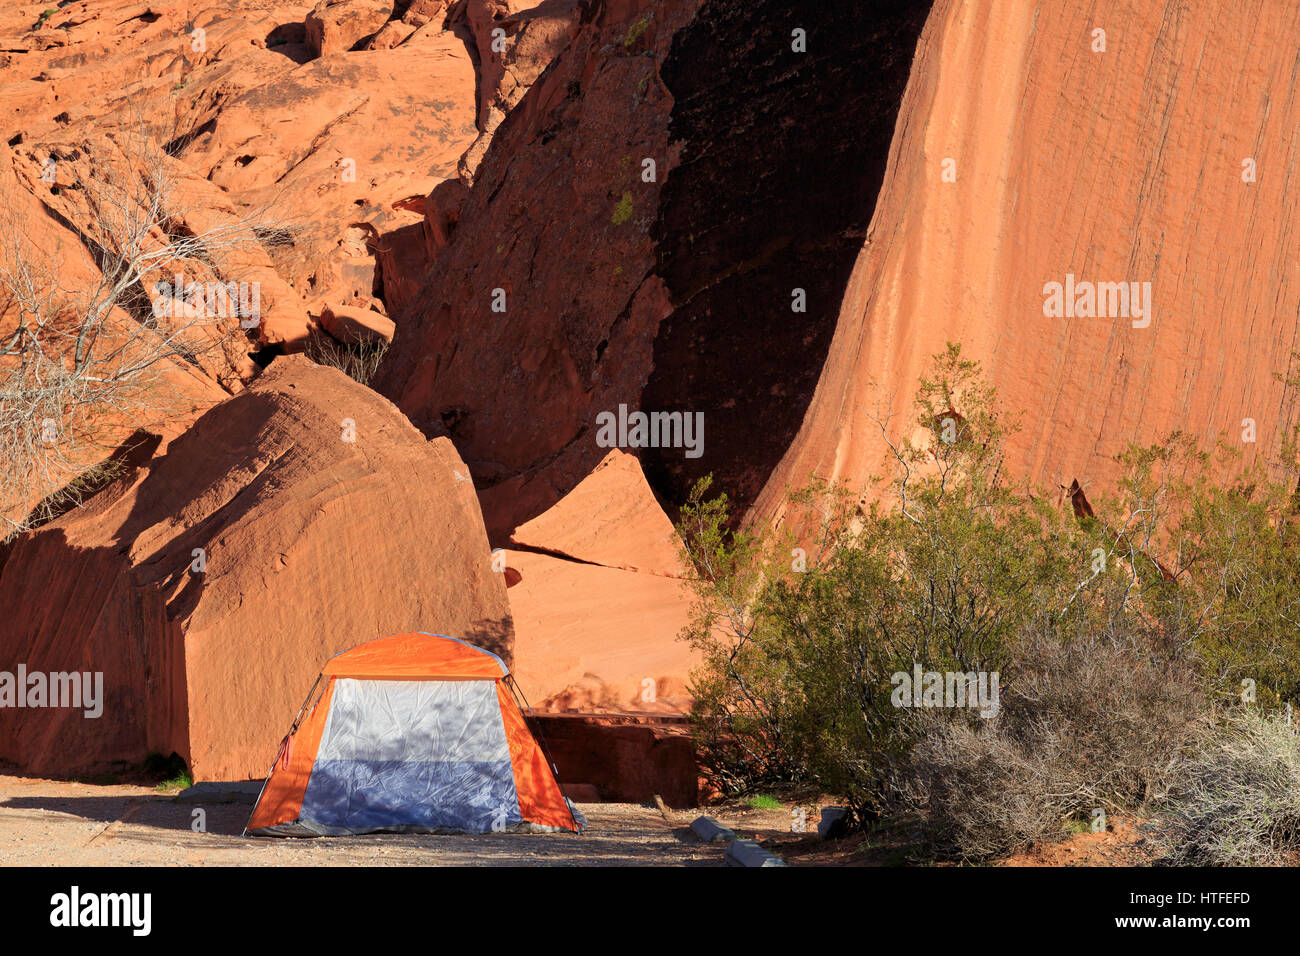 Atlatl Rock Campground Valley Of Fire State Park Overton Nevada Stock Photo Alamy